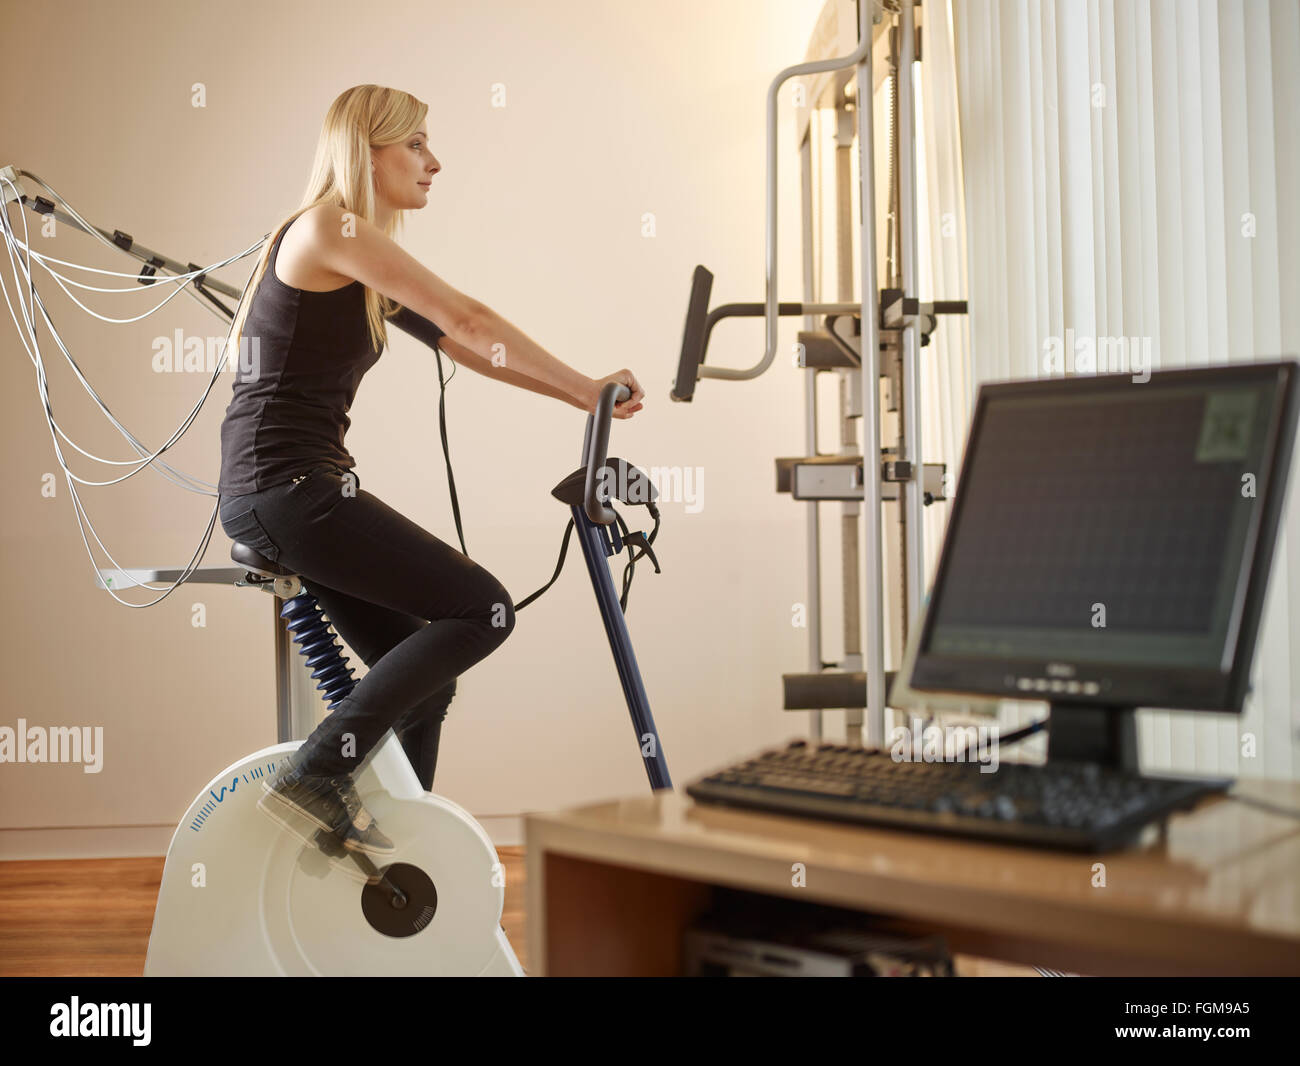 Young blonde woman, 25-30 years, ECG examination, Austria - Stock Image